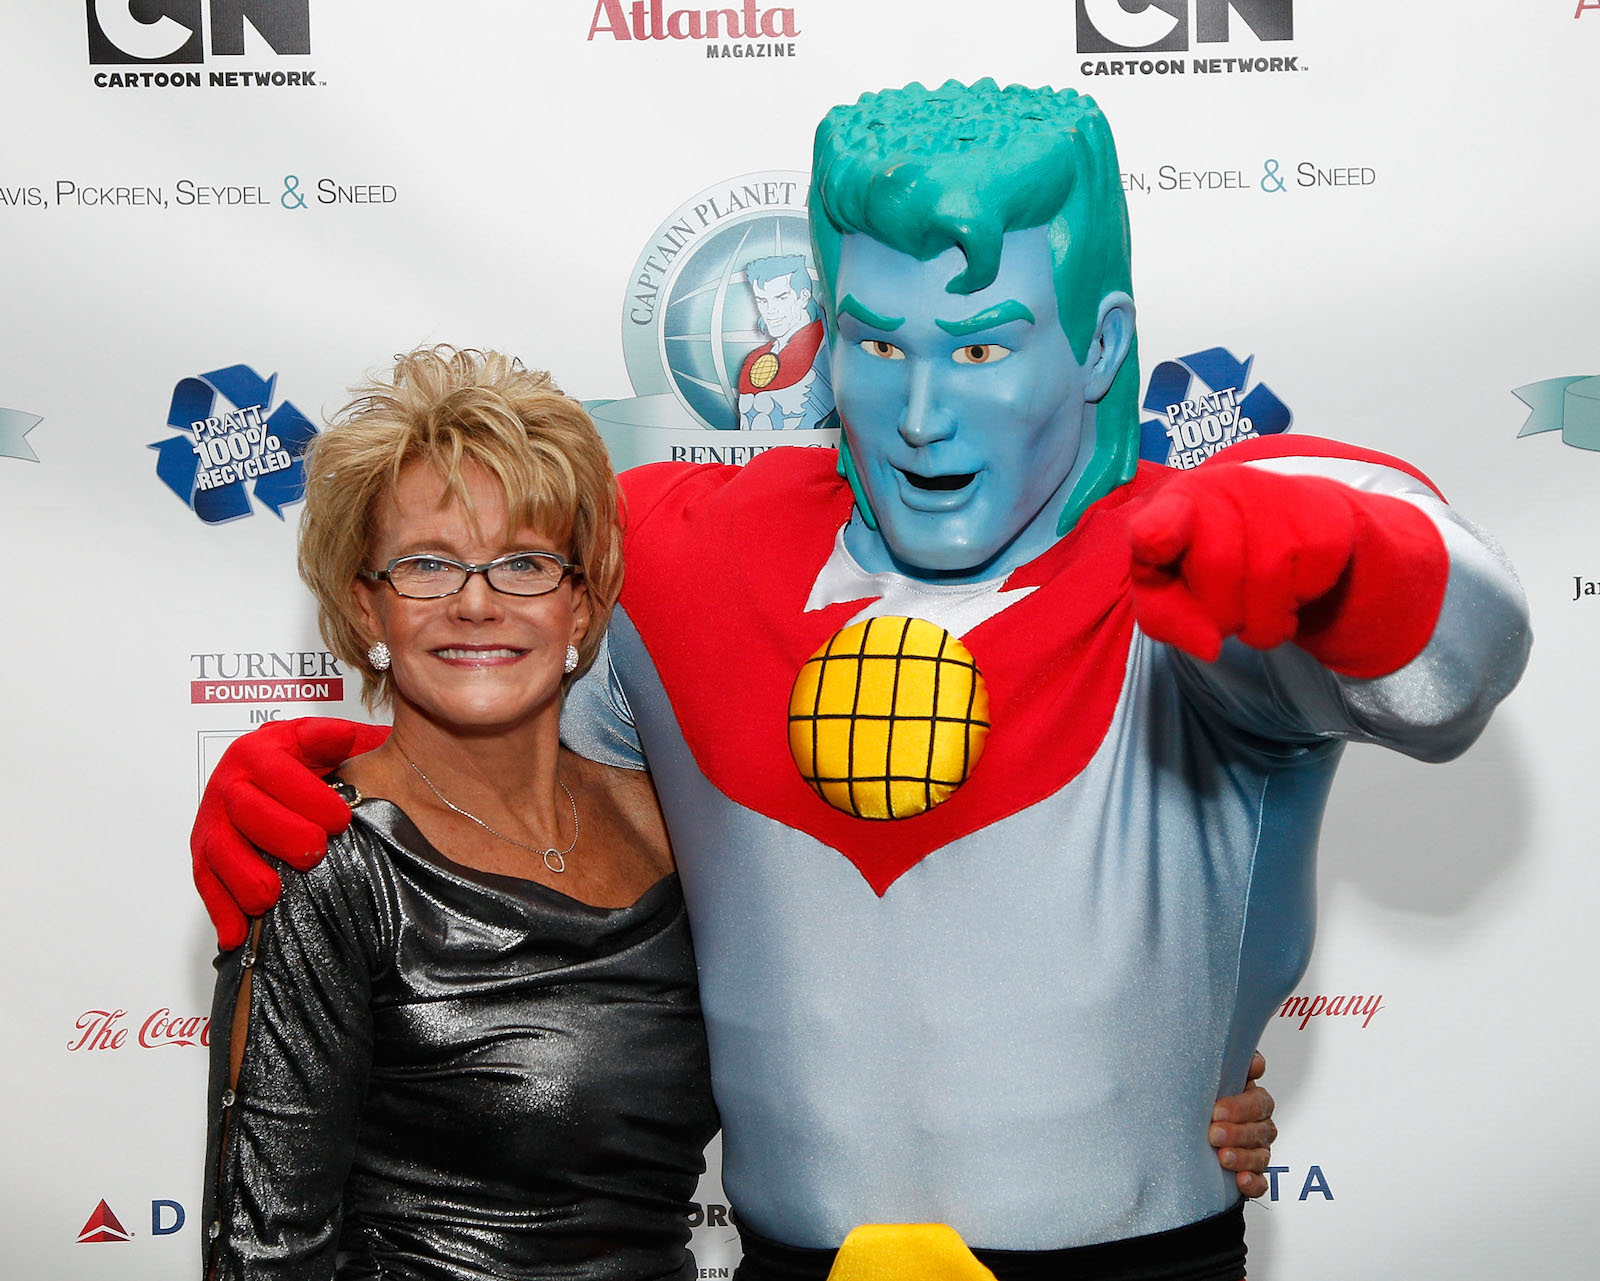 a woman in a sparkly dress on the left, a person in a captain planet costume with green hair, blue skin, and a red half-shirt on the right